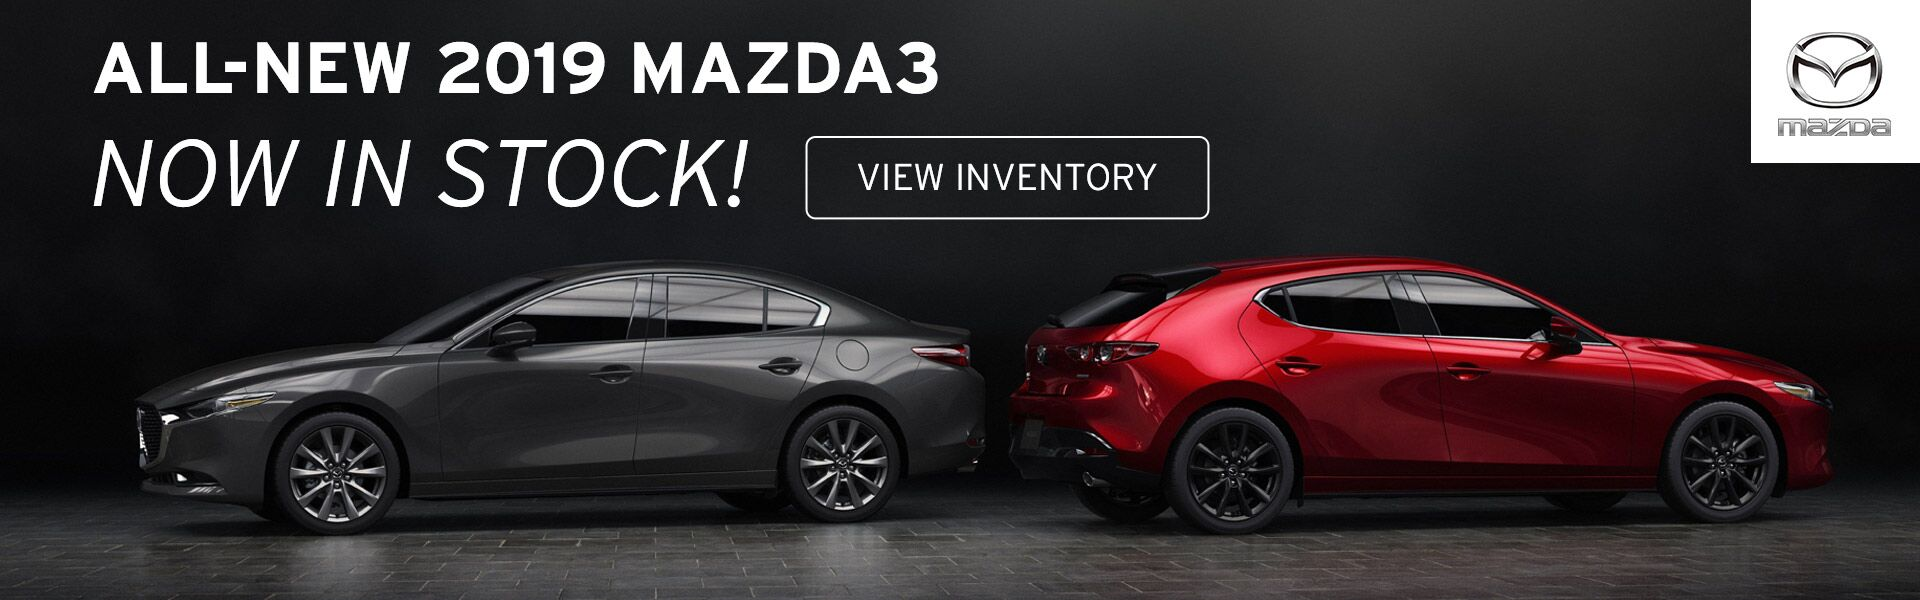 All-New 2019 Mazda3 Now In Stock